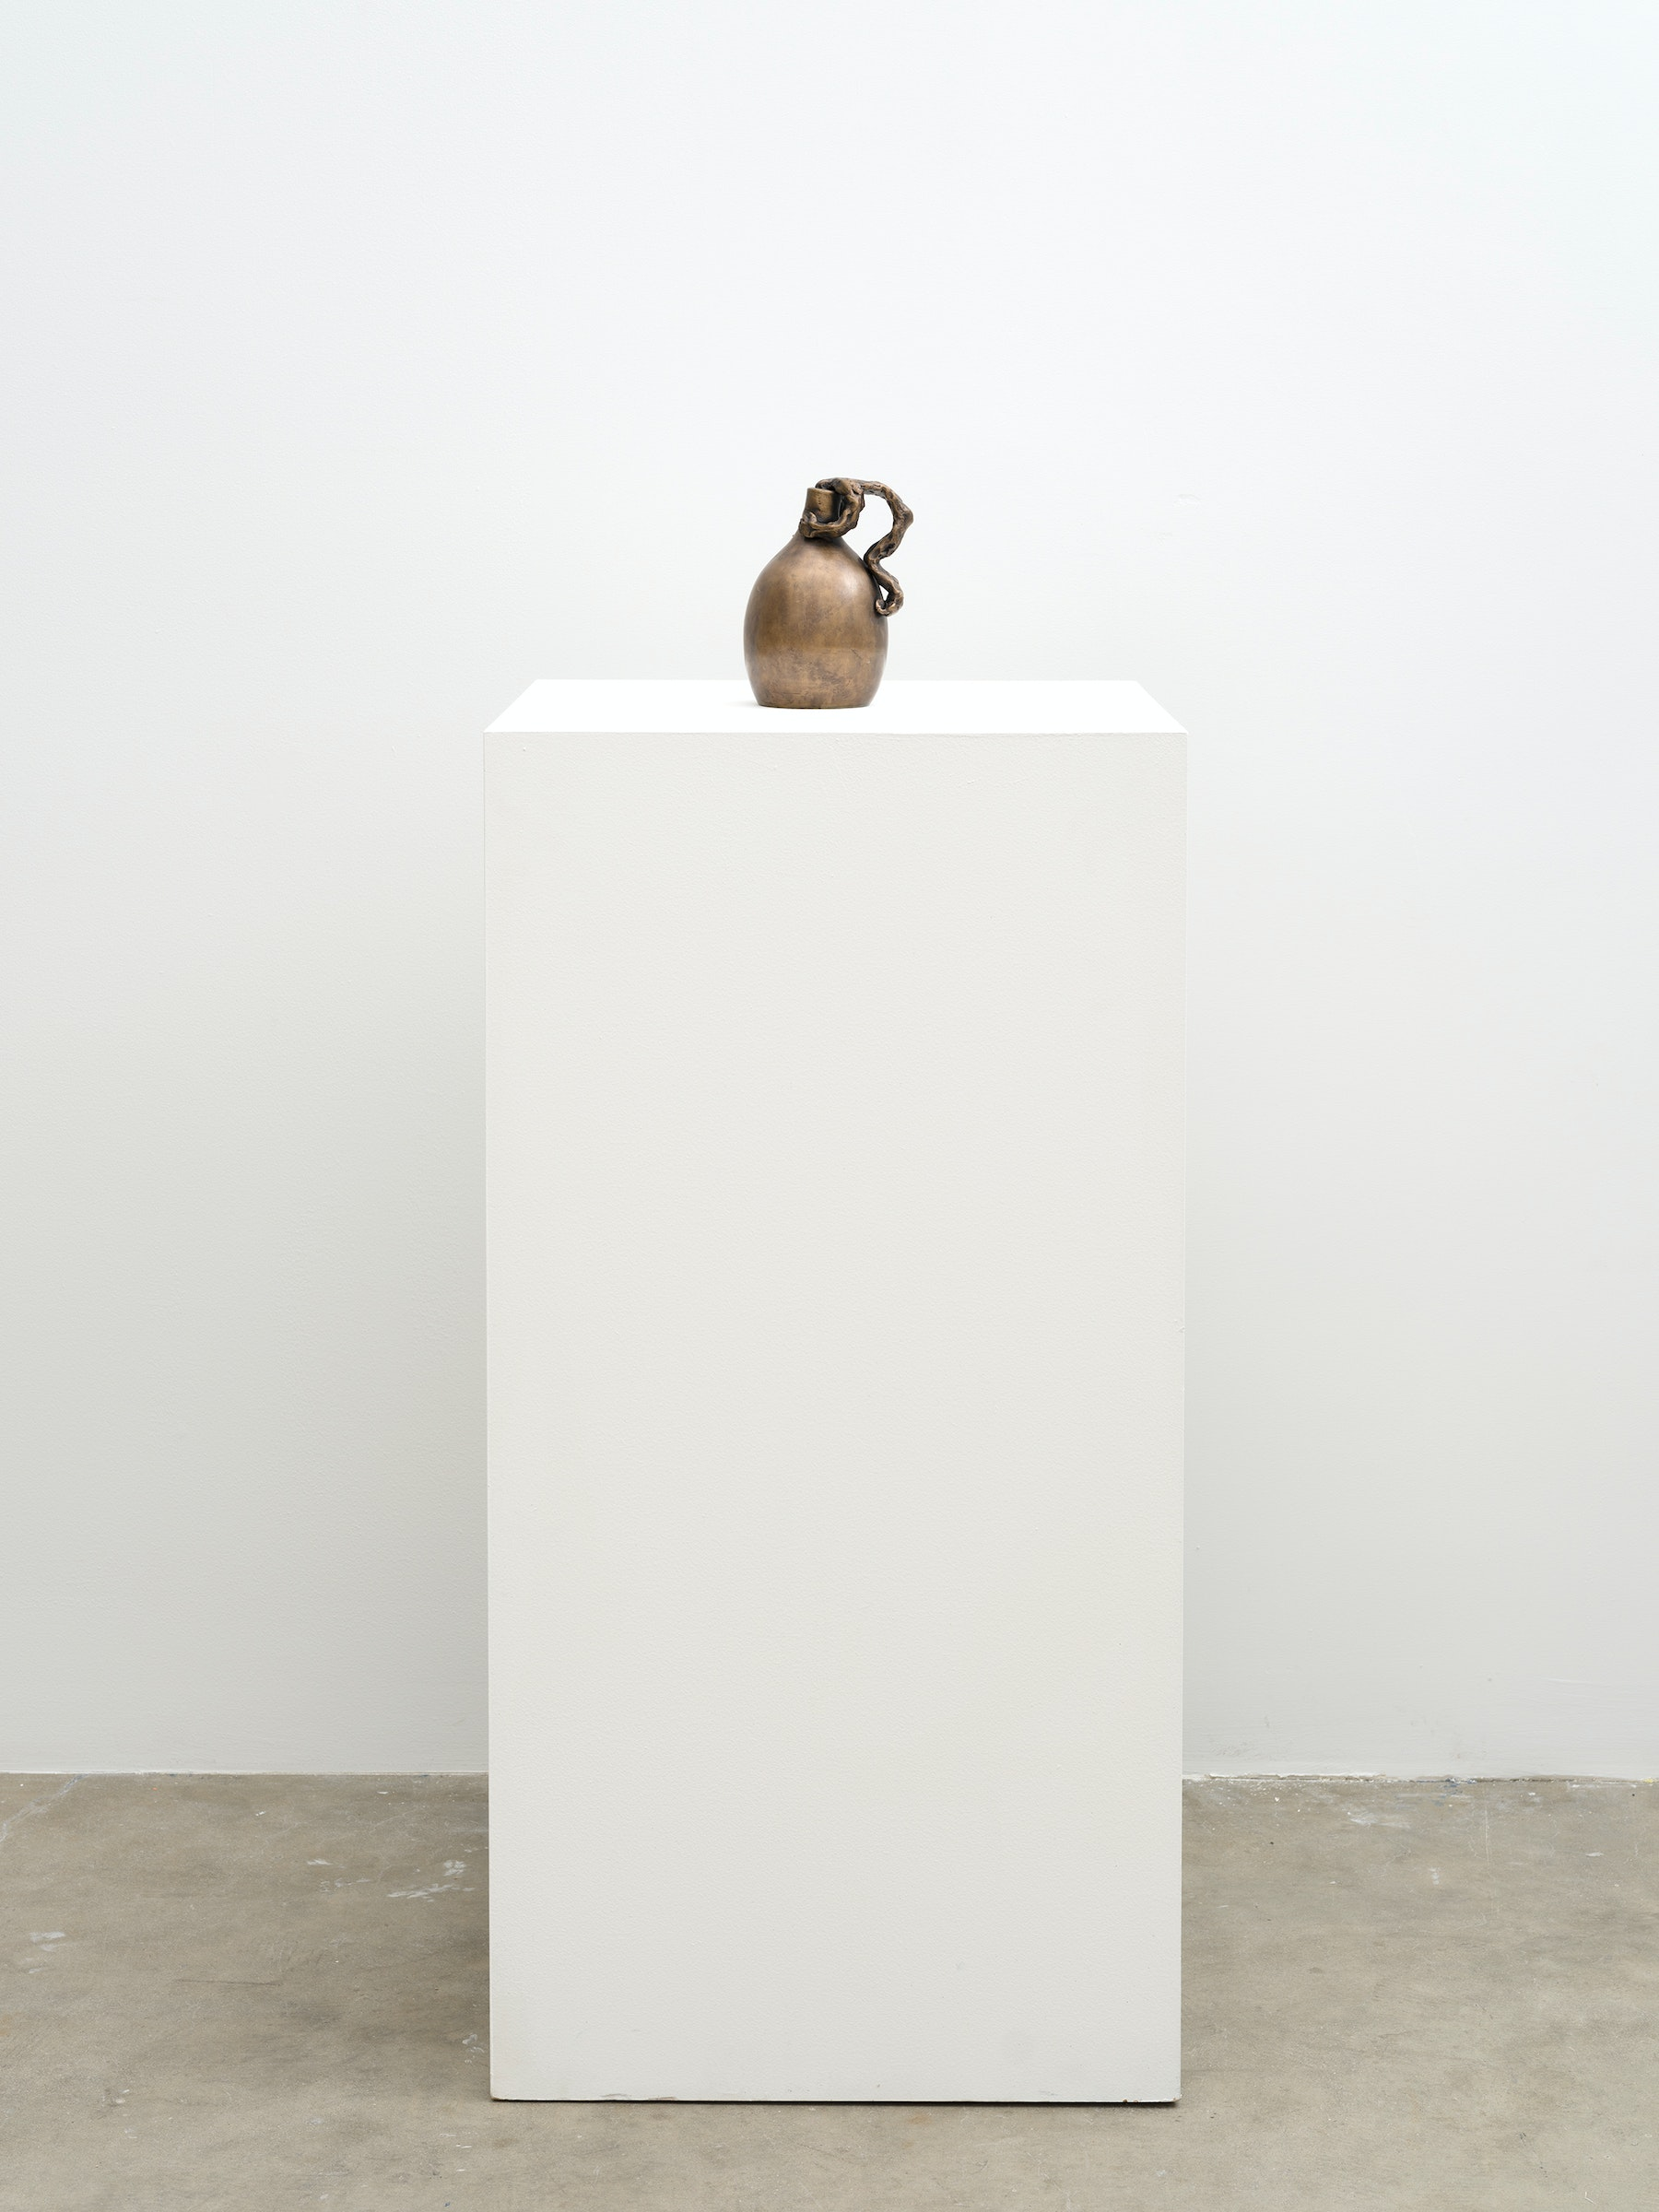 """Stanya Kahn """"Untitled 2021,"""" 2021 Bronze 7"""" x 5"""" x 4 ¹⁄₄"""" [HxWxD] (17.78 x 12.7 x 10.79 cm) Edition 1 of 3, 2 AP Inventory #KAH429.01 Courtesy of the artist and Vielmetter Los Angeles Photo credit: Jeff McLane"""